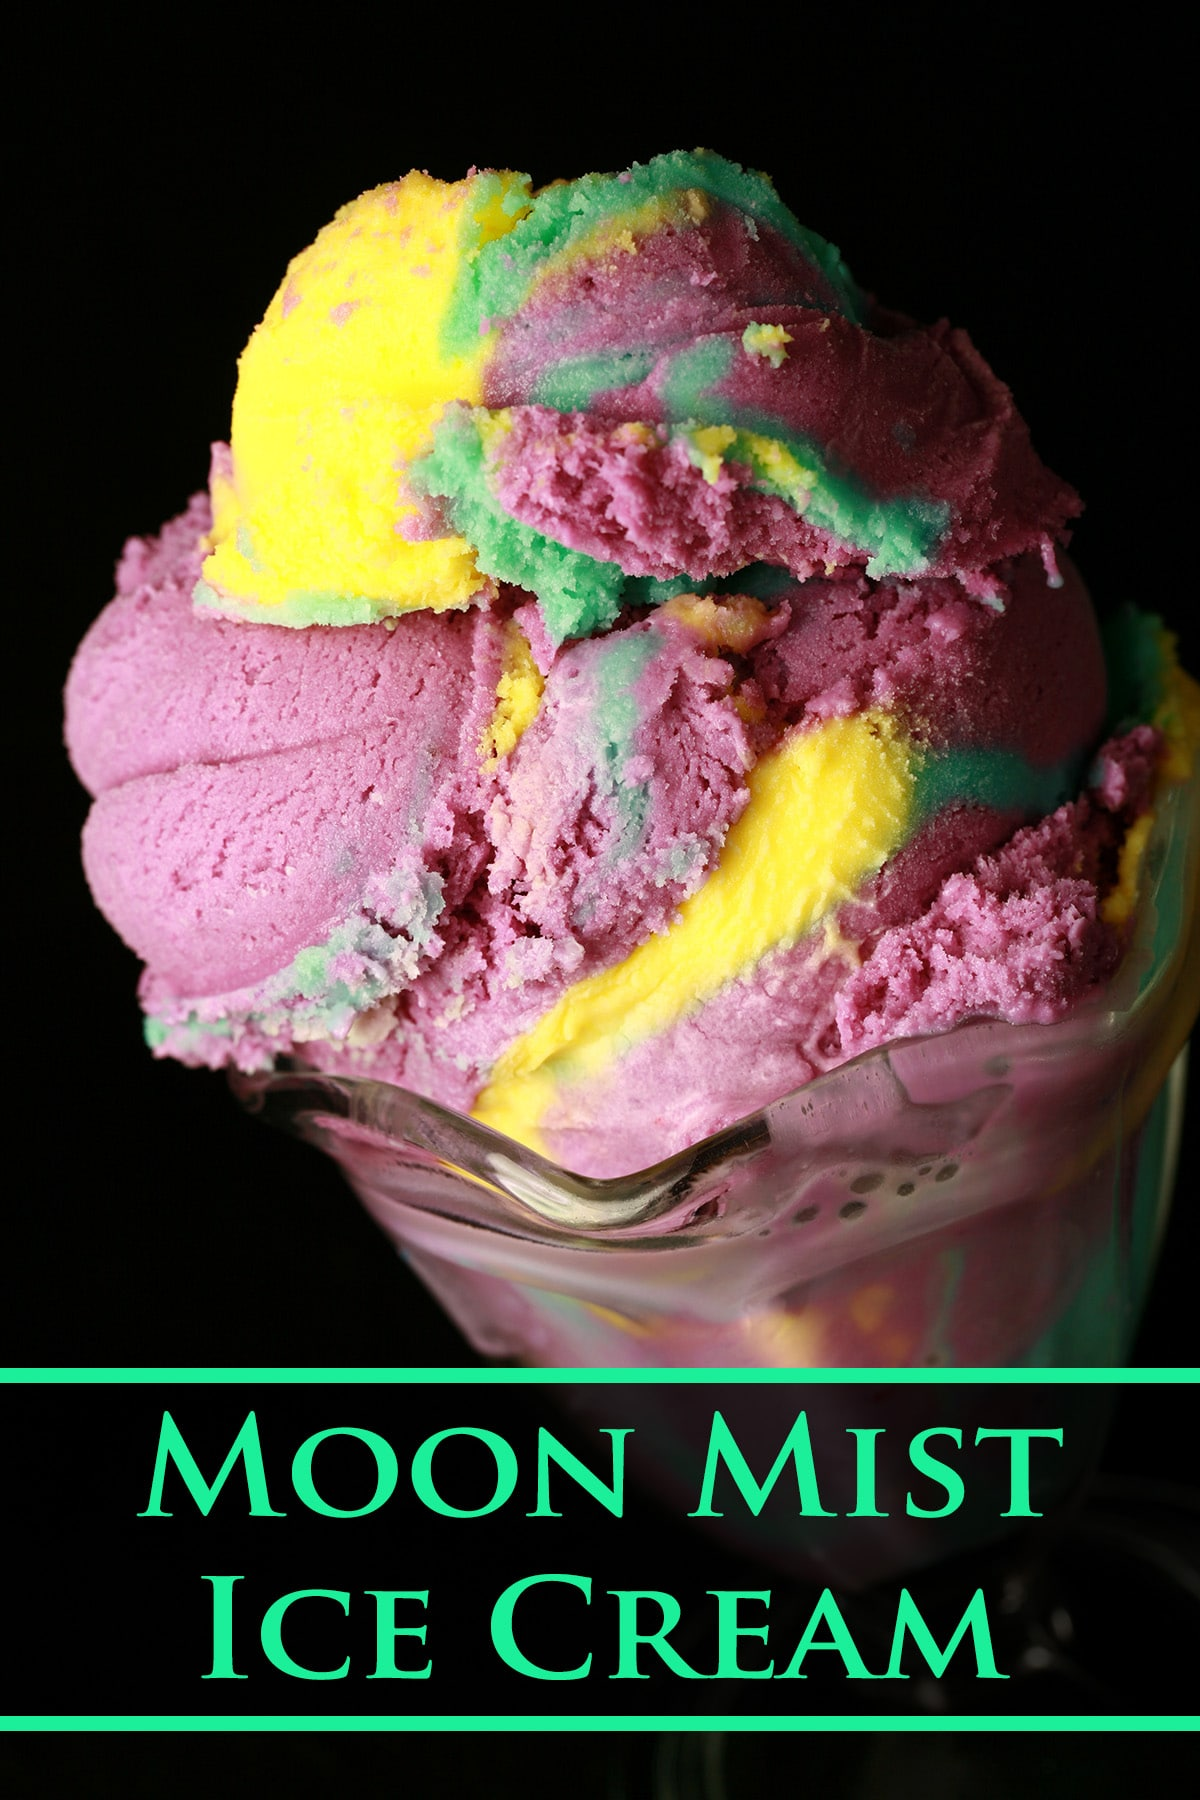 A fluted glass dessert bowl is stacked high with scoops of homemade moon mist ice cream - purple, blue, and yellow marbled ice cream.